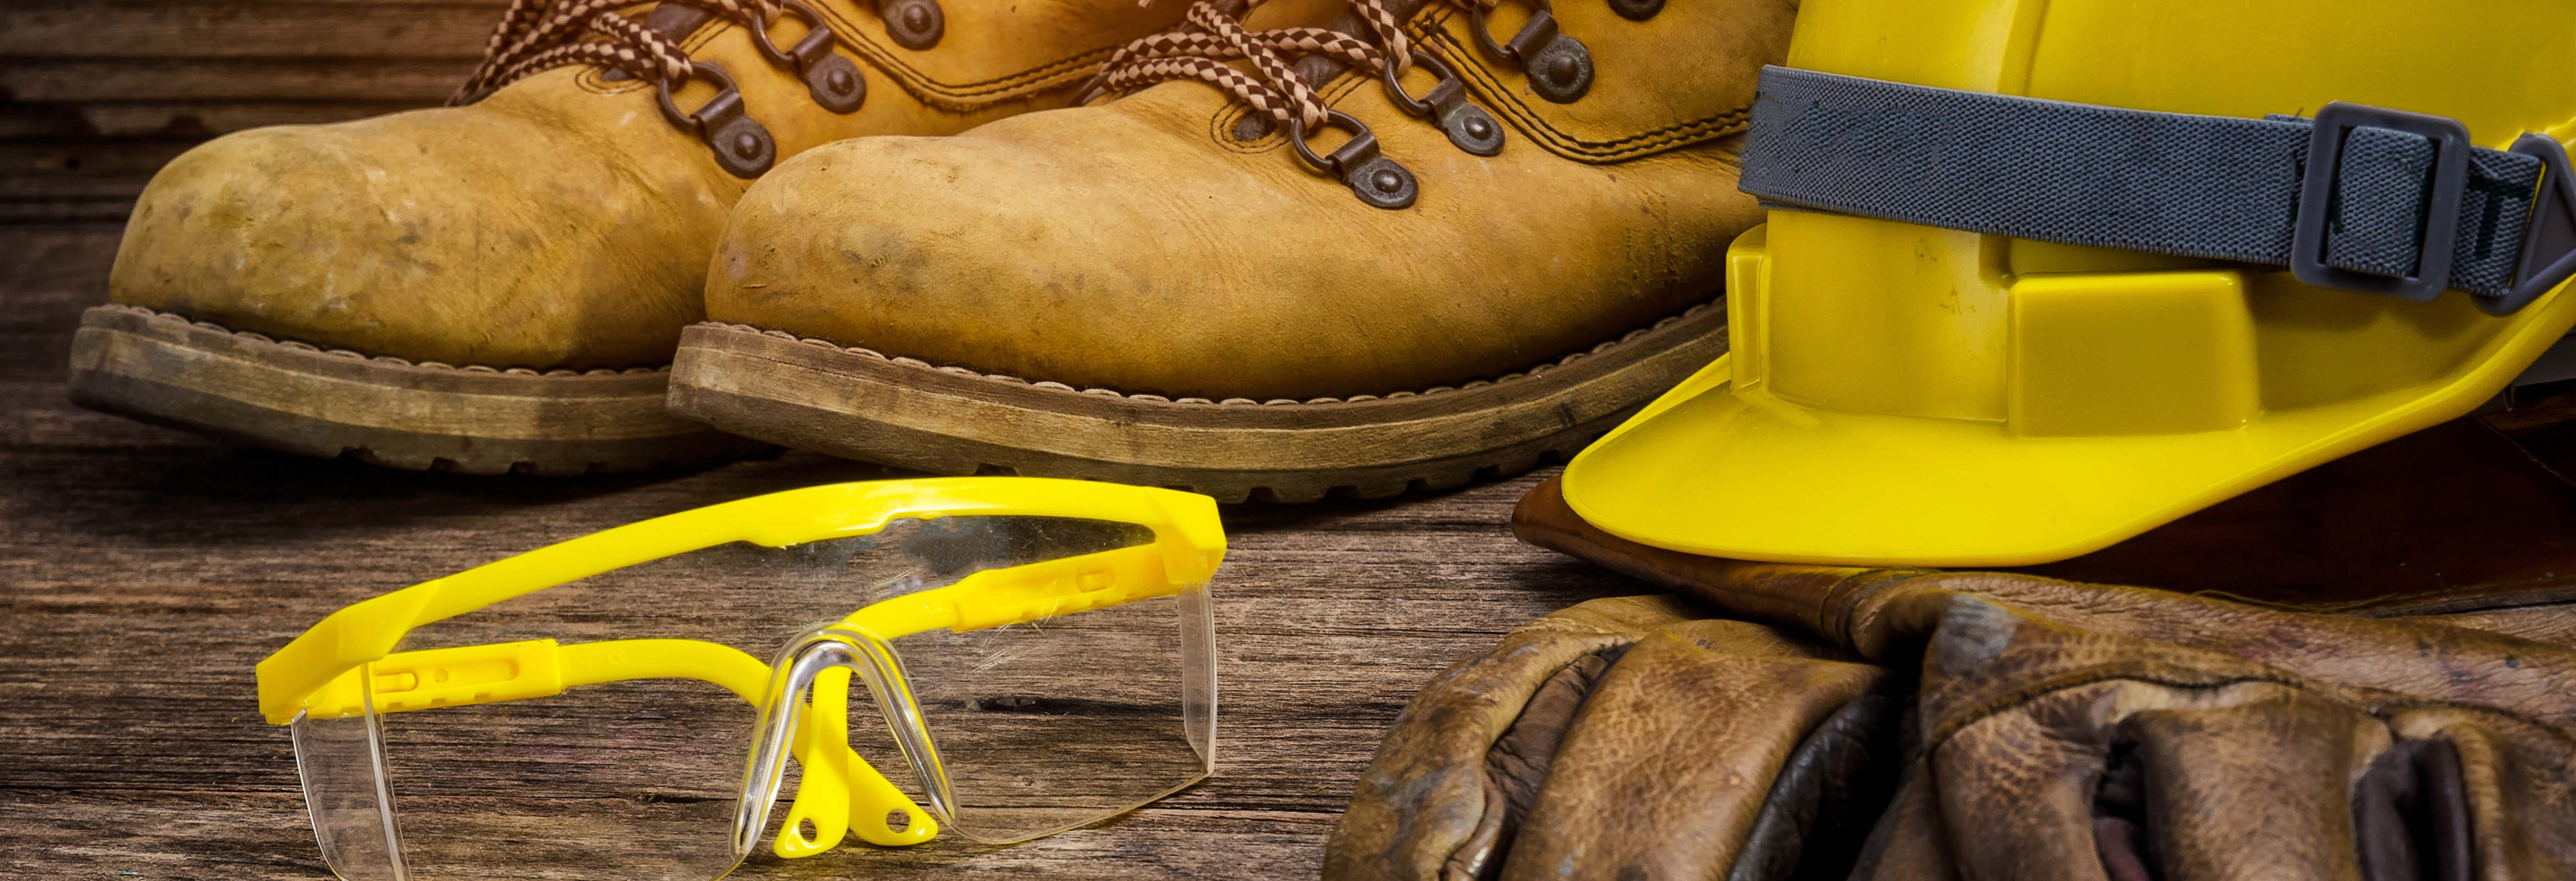 Construction Clothing on wooden floor